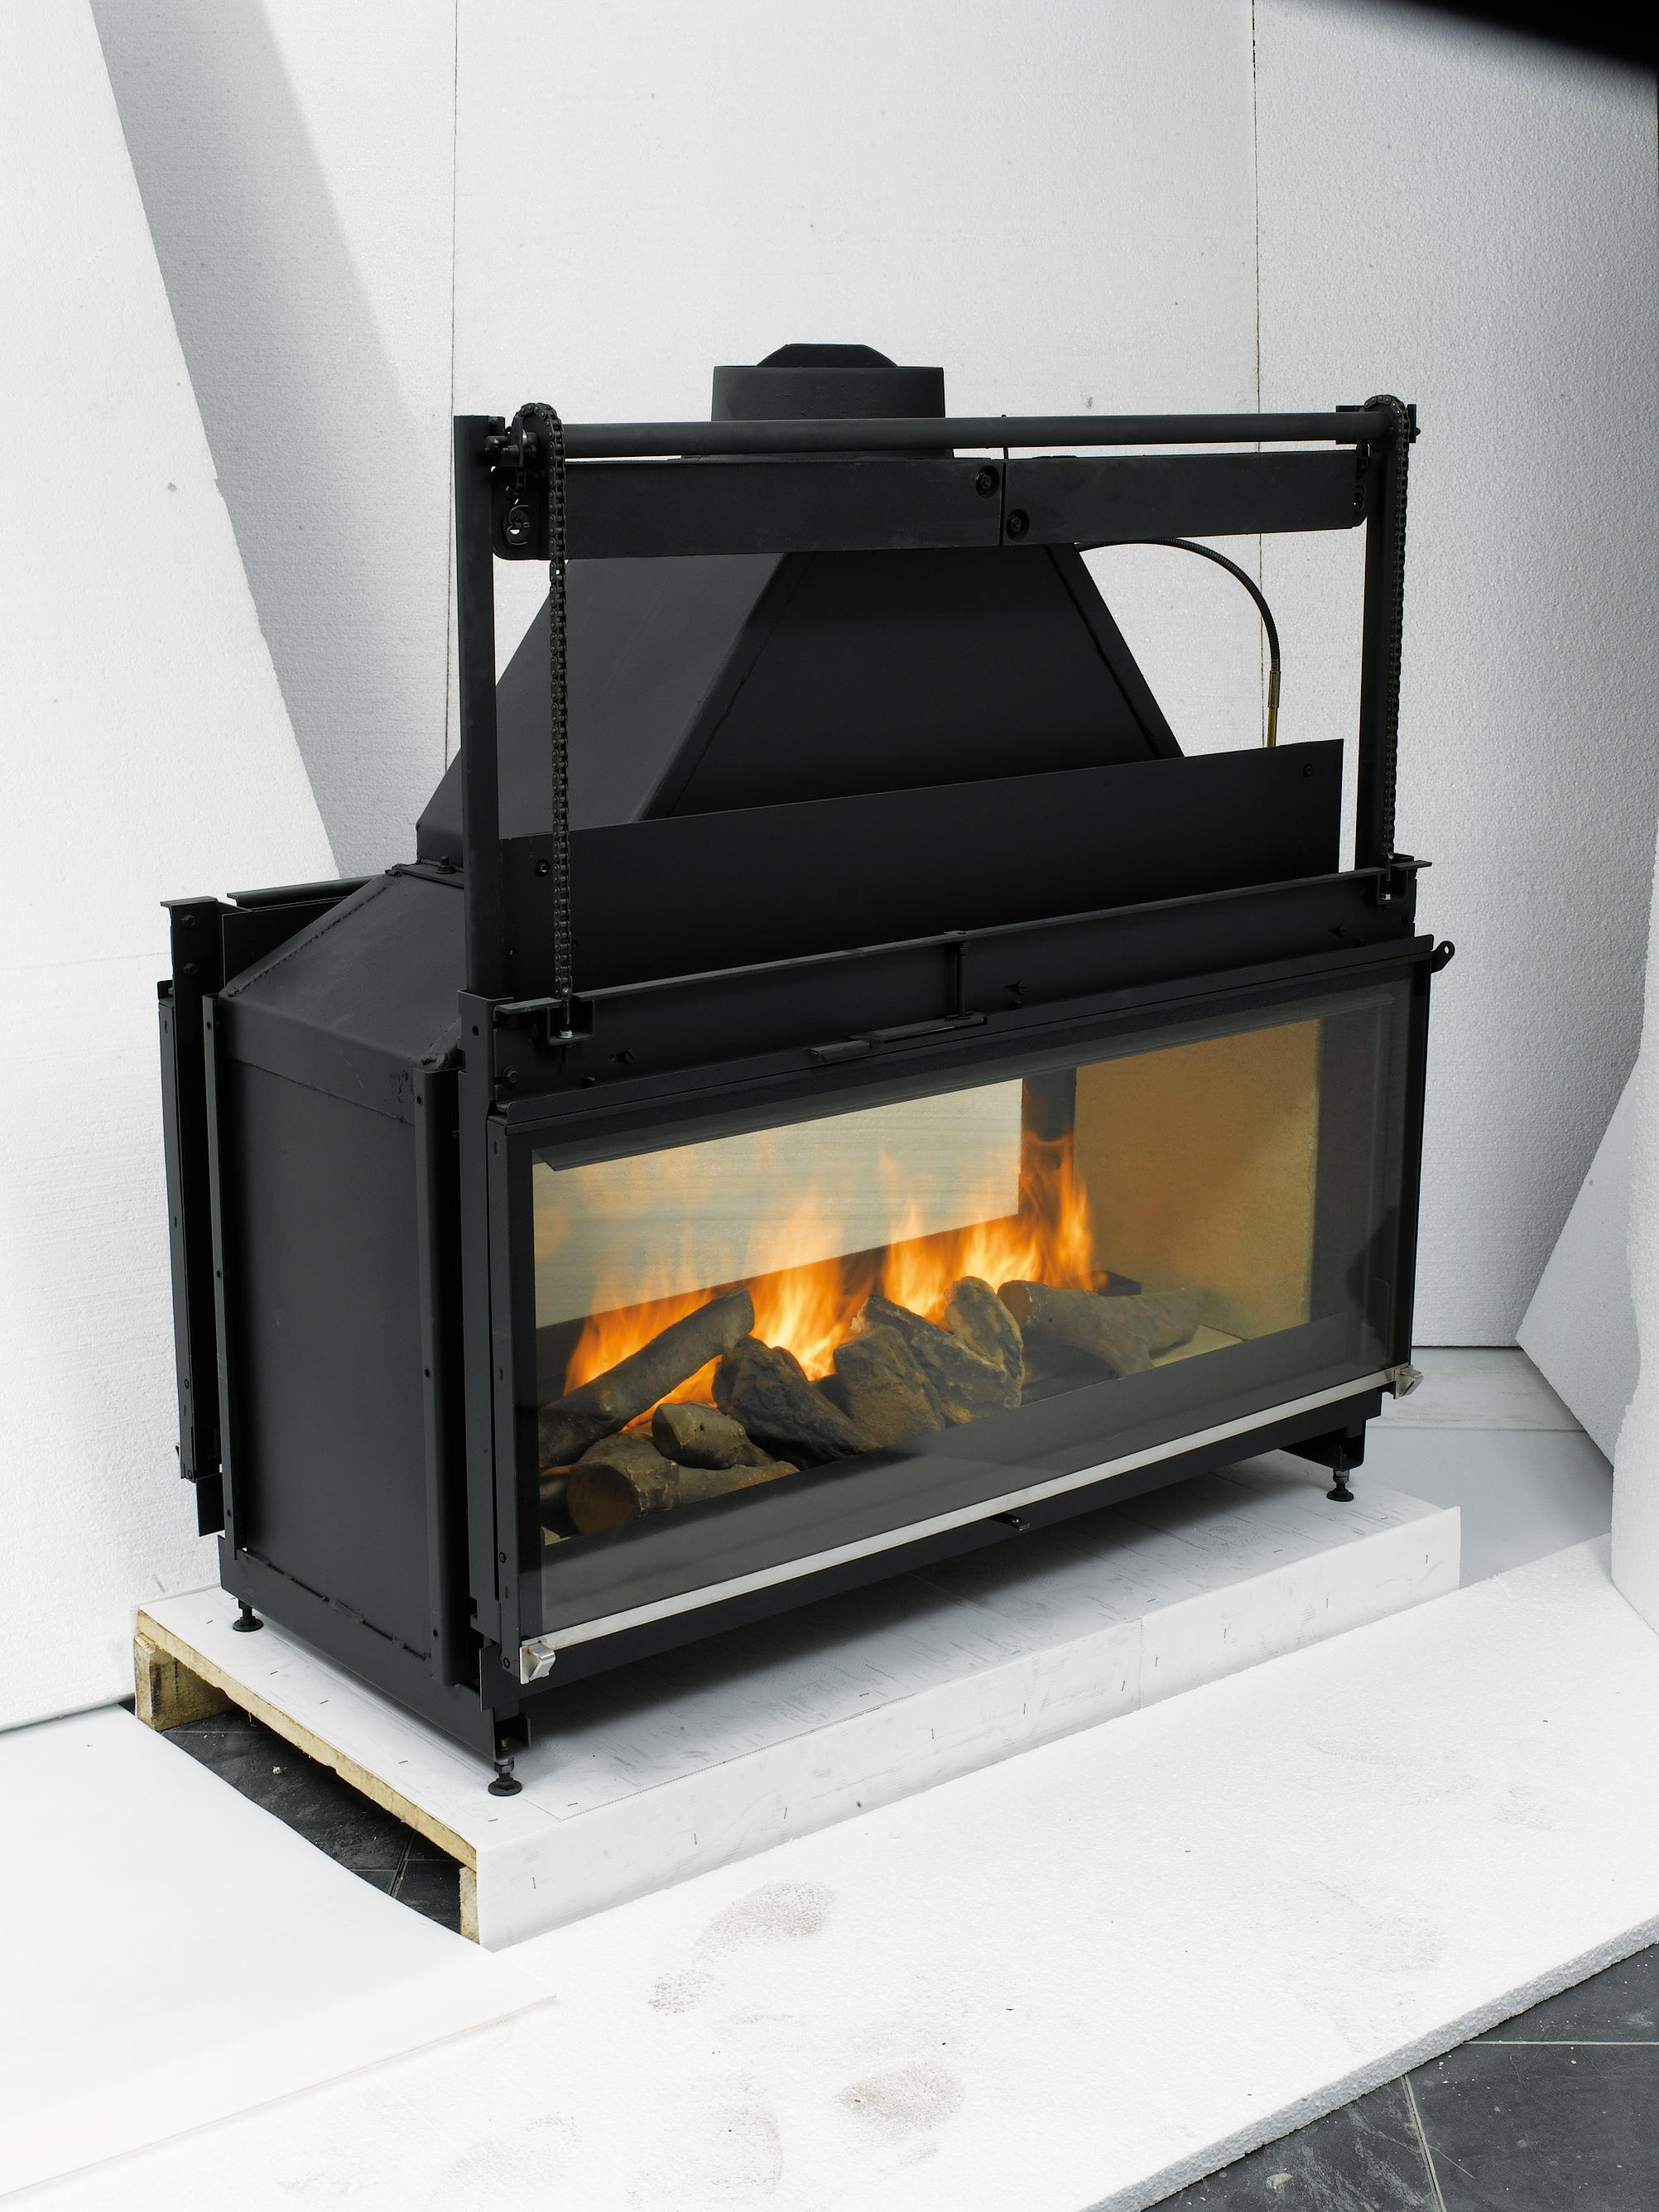 L123 x H120 x D66 cm Wood Burning Colour – Anthracite Steel casing with cast iron and firebrick fire-chamber Power: 17w Flue size outlet: 250 diameter Full glass front slides up Can be used door open or closed Godin Freestanding Woodburning Fireplaces Godin Woodburning Fireplace Inserts Godin Double-sided Woodburning